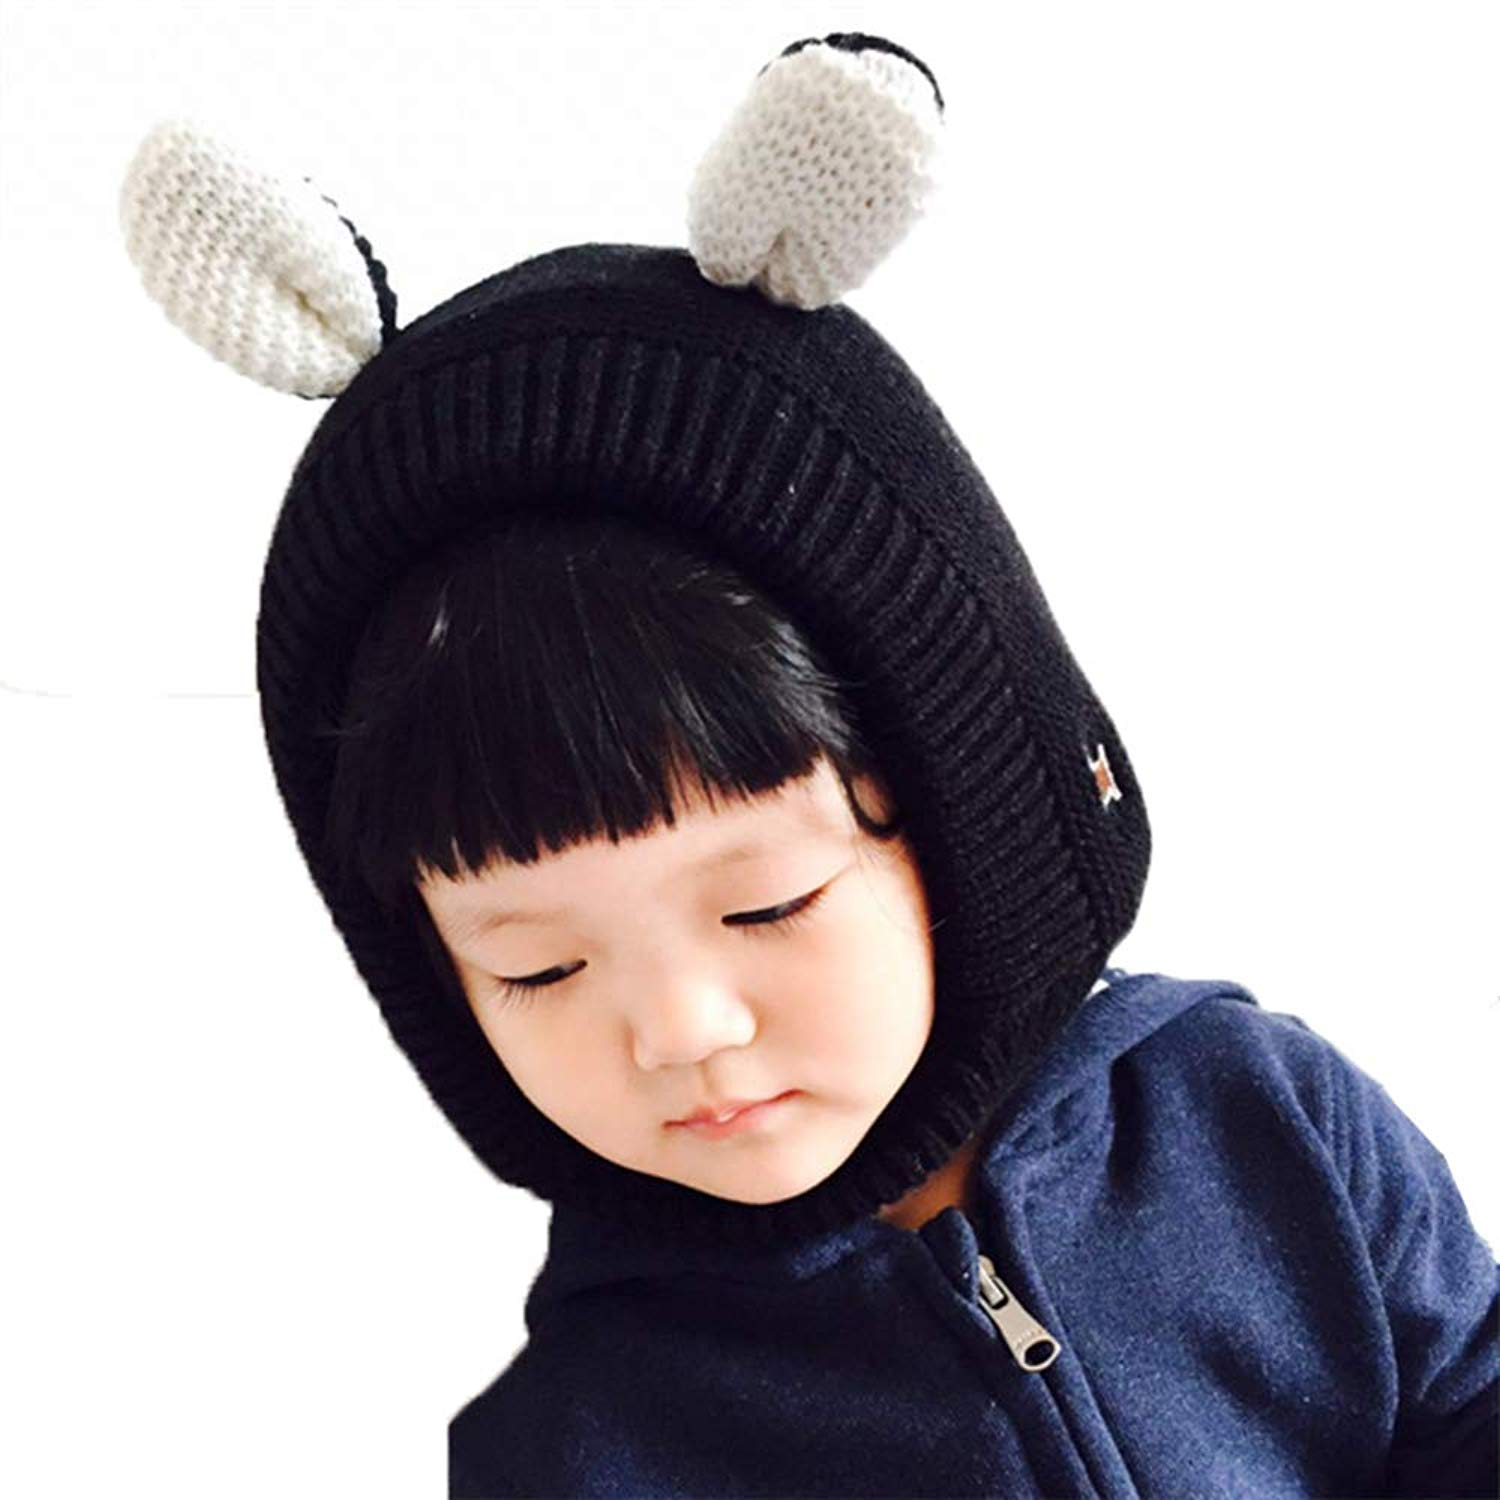 b33853f937d Get Quotations · Yehopere Kids Baby Toddler Cable Knit Hat Children¡¯s  Winter Hat Ears Beanie Caps